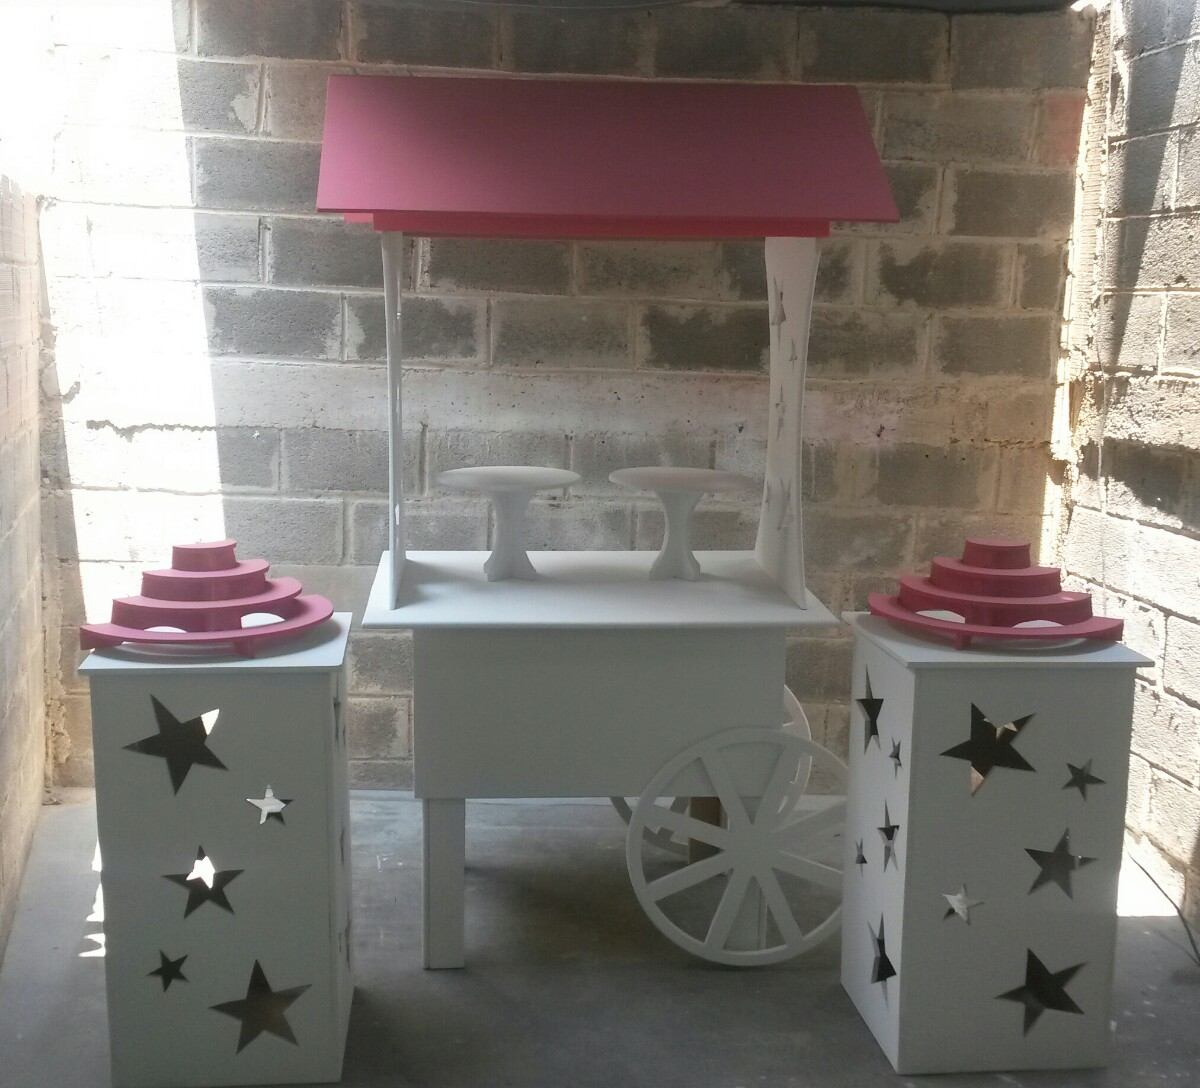 Set carreta mobiliario candy bar para mesa d dulces for Mobiliario para bar